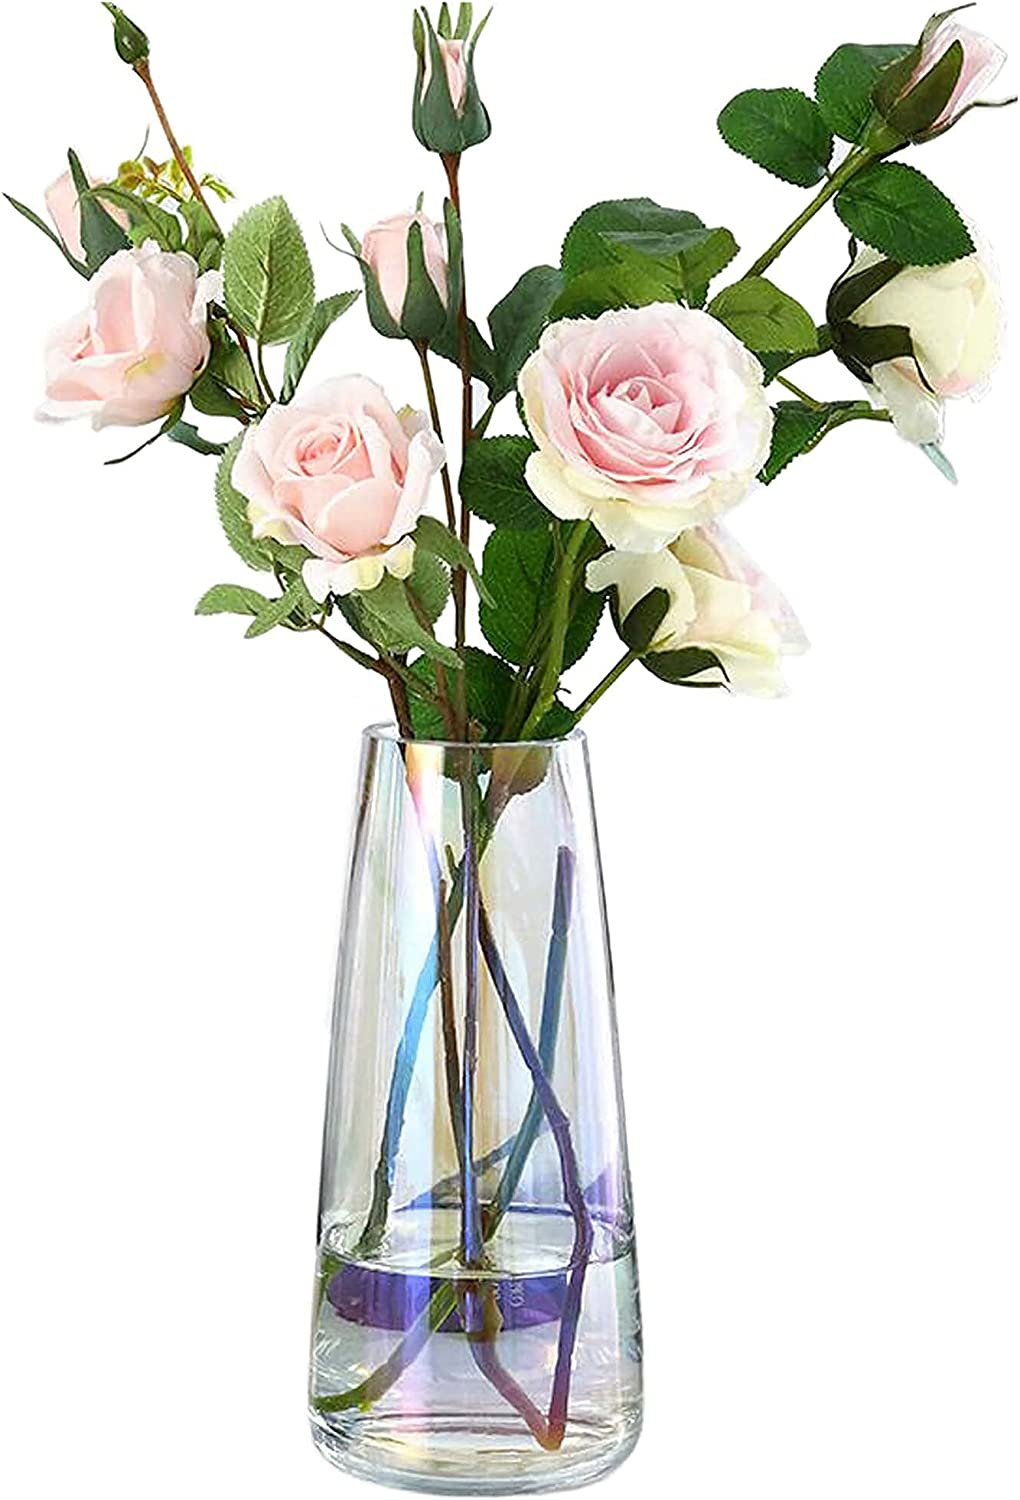 Ins Modern Glass Vase Irised Crystal Clear Glass Vase for Home Office Decor (Irised Clear)